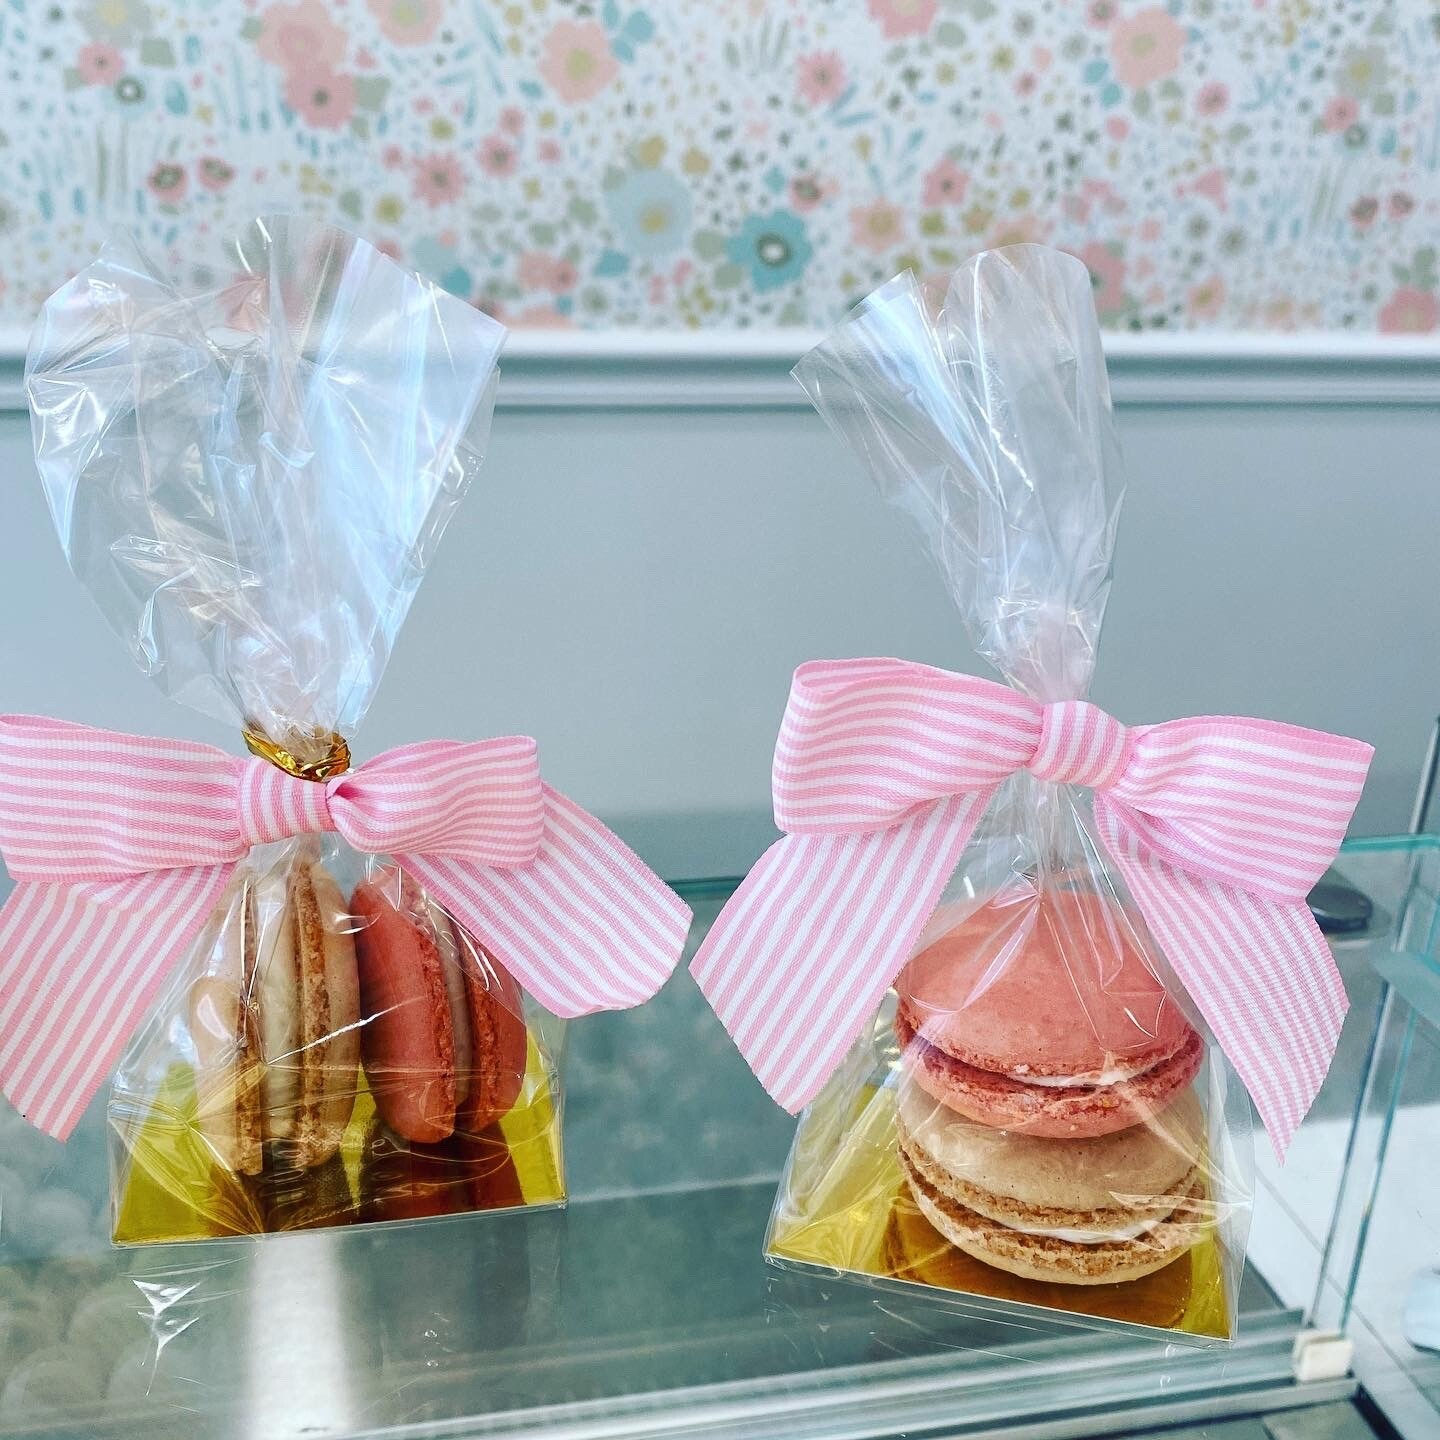 2 Macaron Favor-cellophane bag